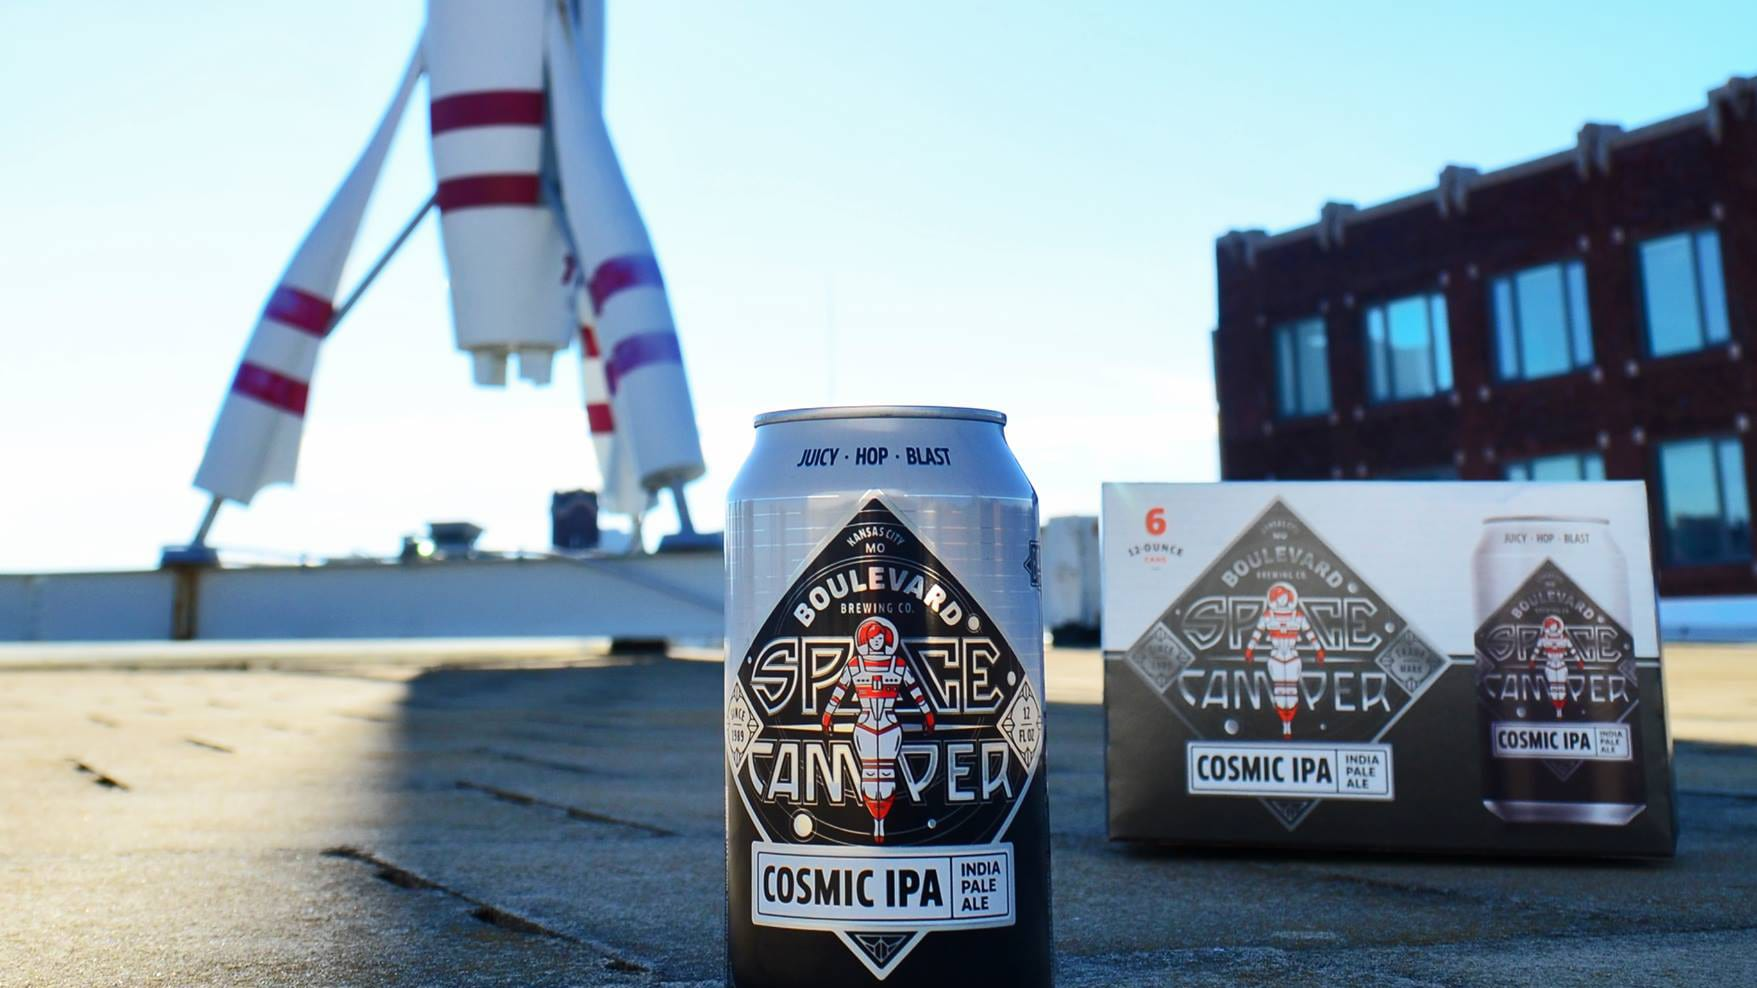 Boulevard Brewing Co.'s Space Camper Cosmic IPA